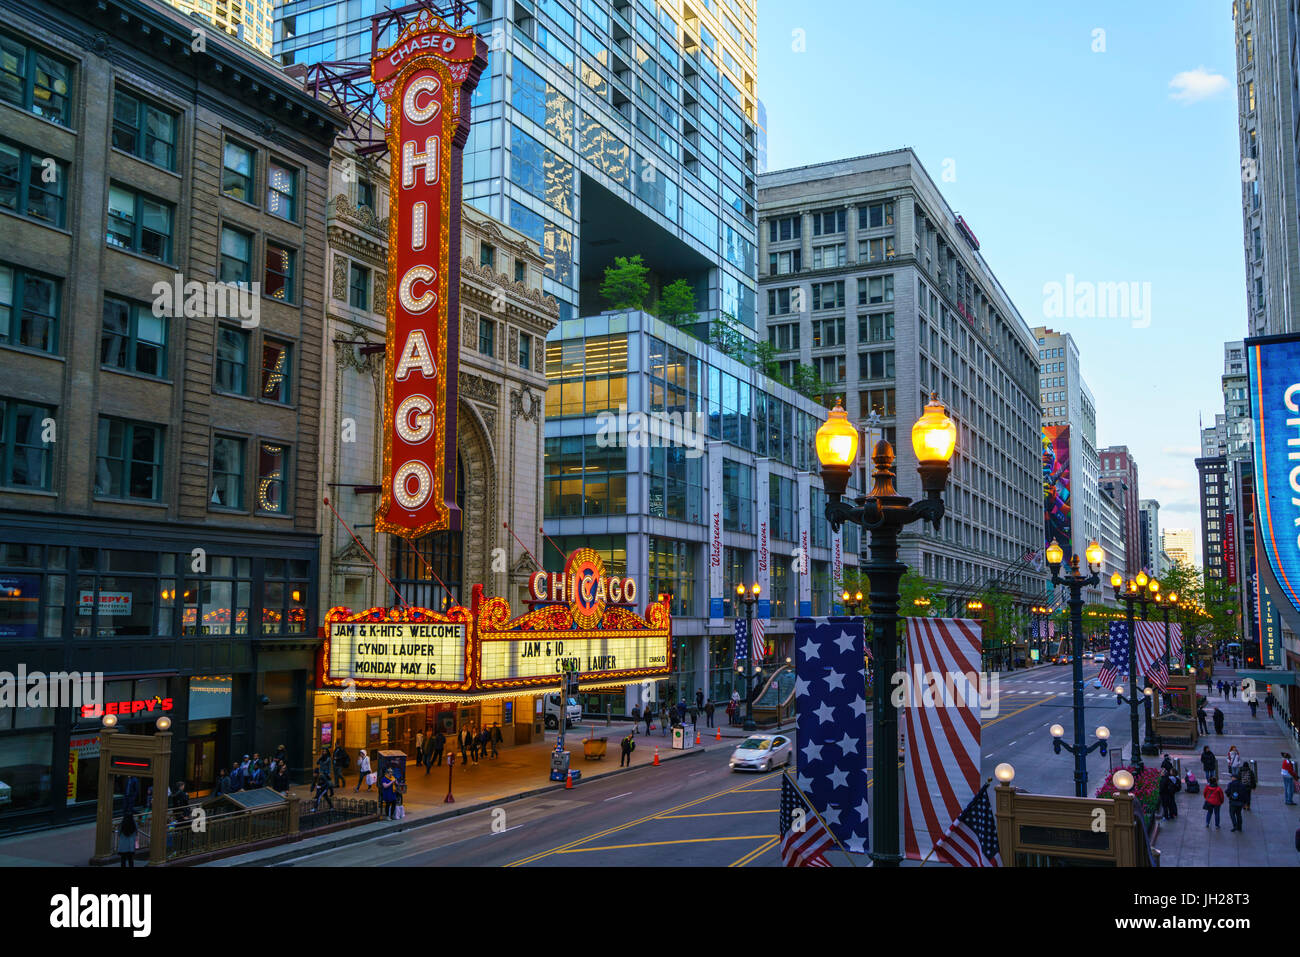 The Chicago Theatre on North State Street, Chicago, Illinois, United States of America, North America - Stock Image